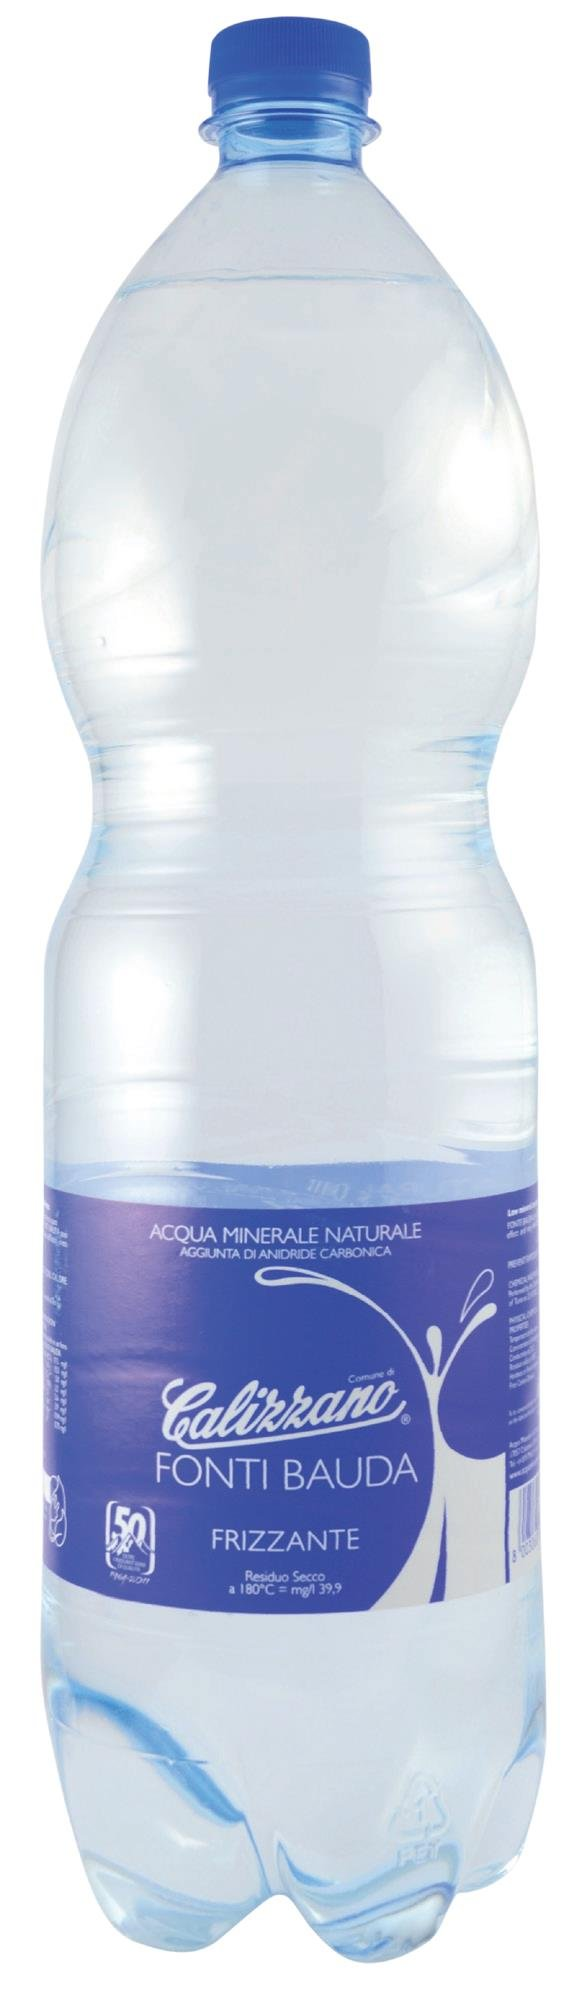 water calizzano 1500ml.jpg